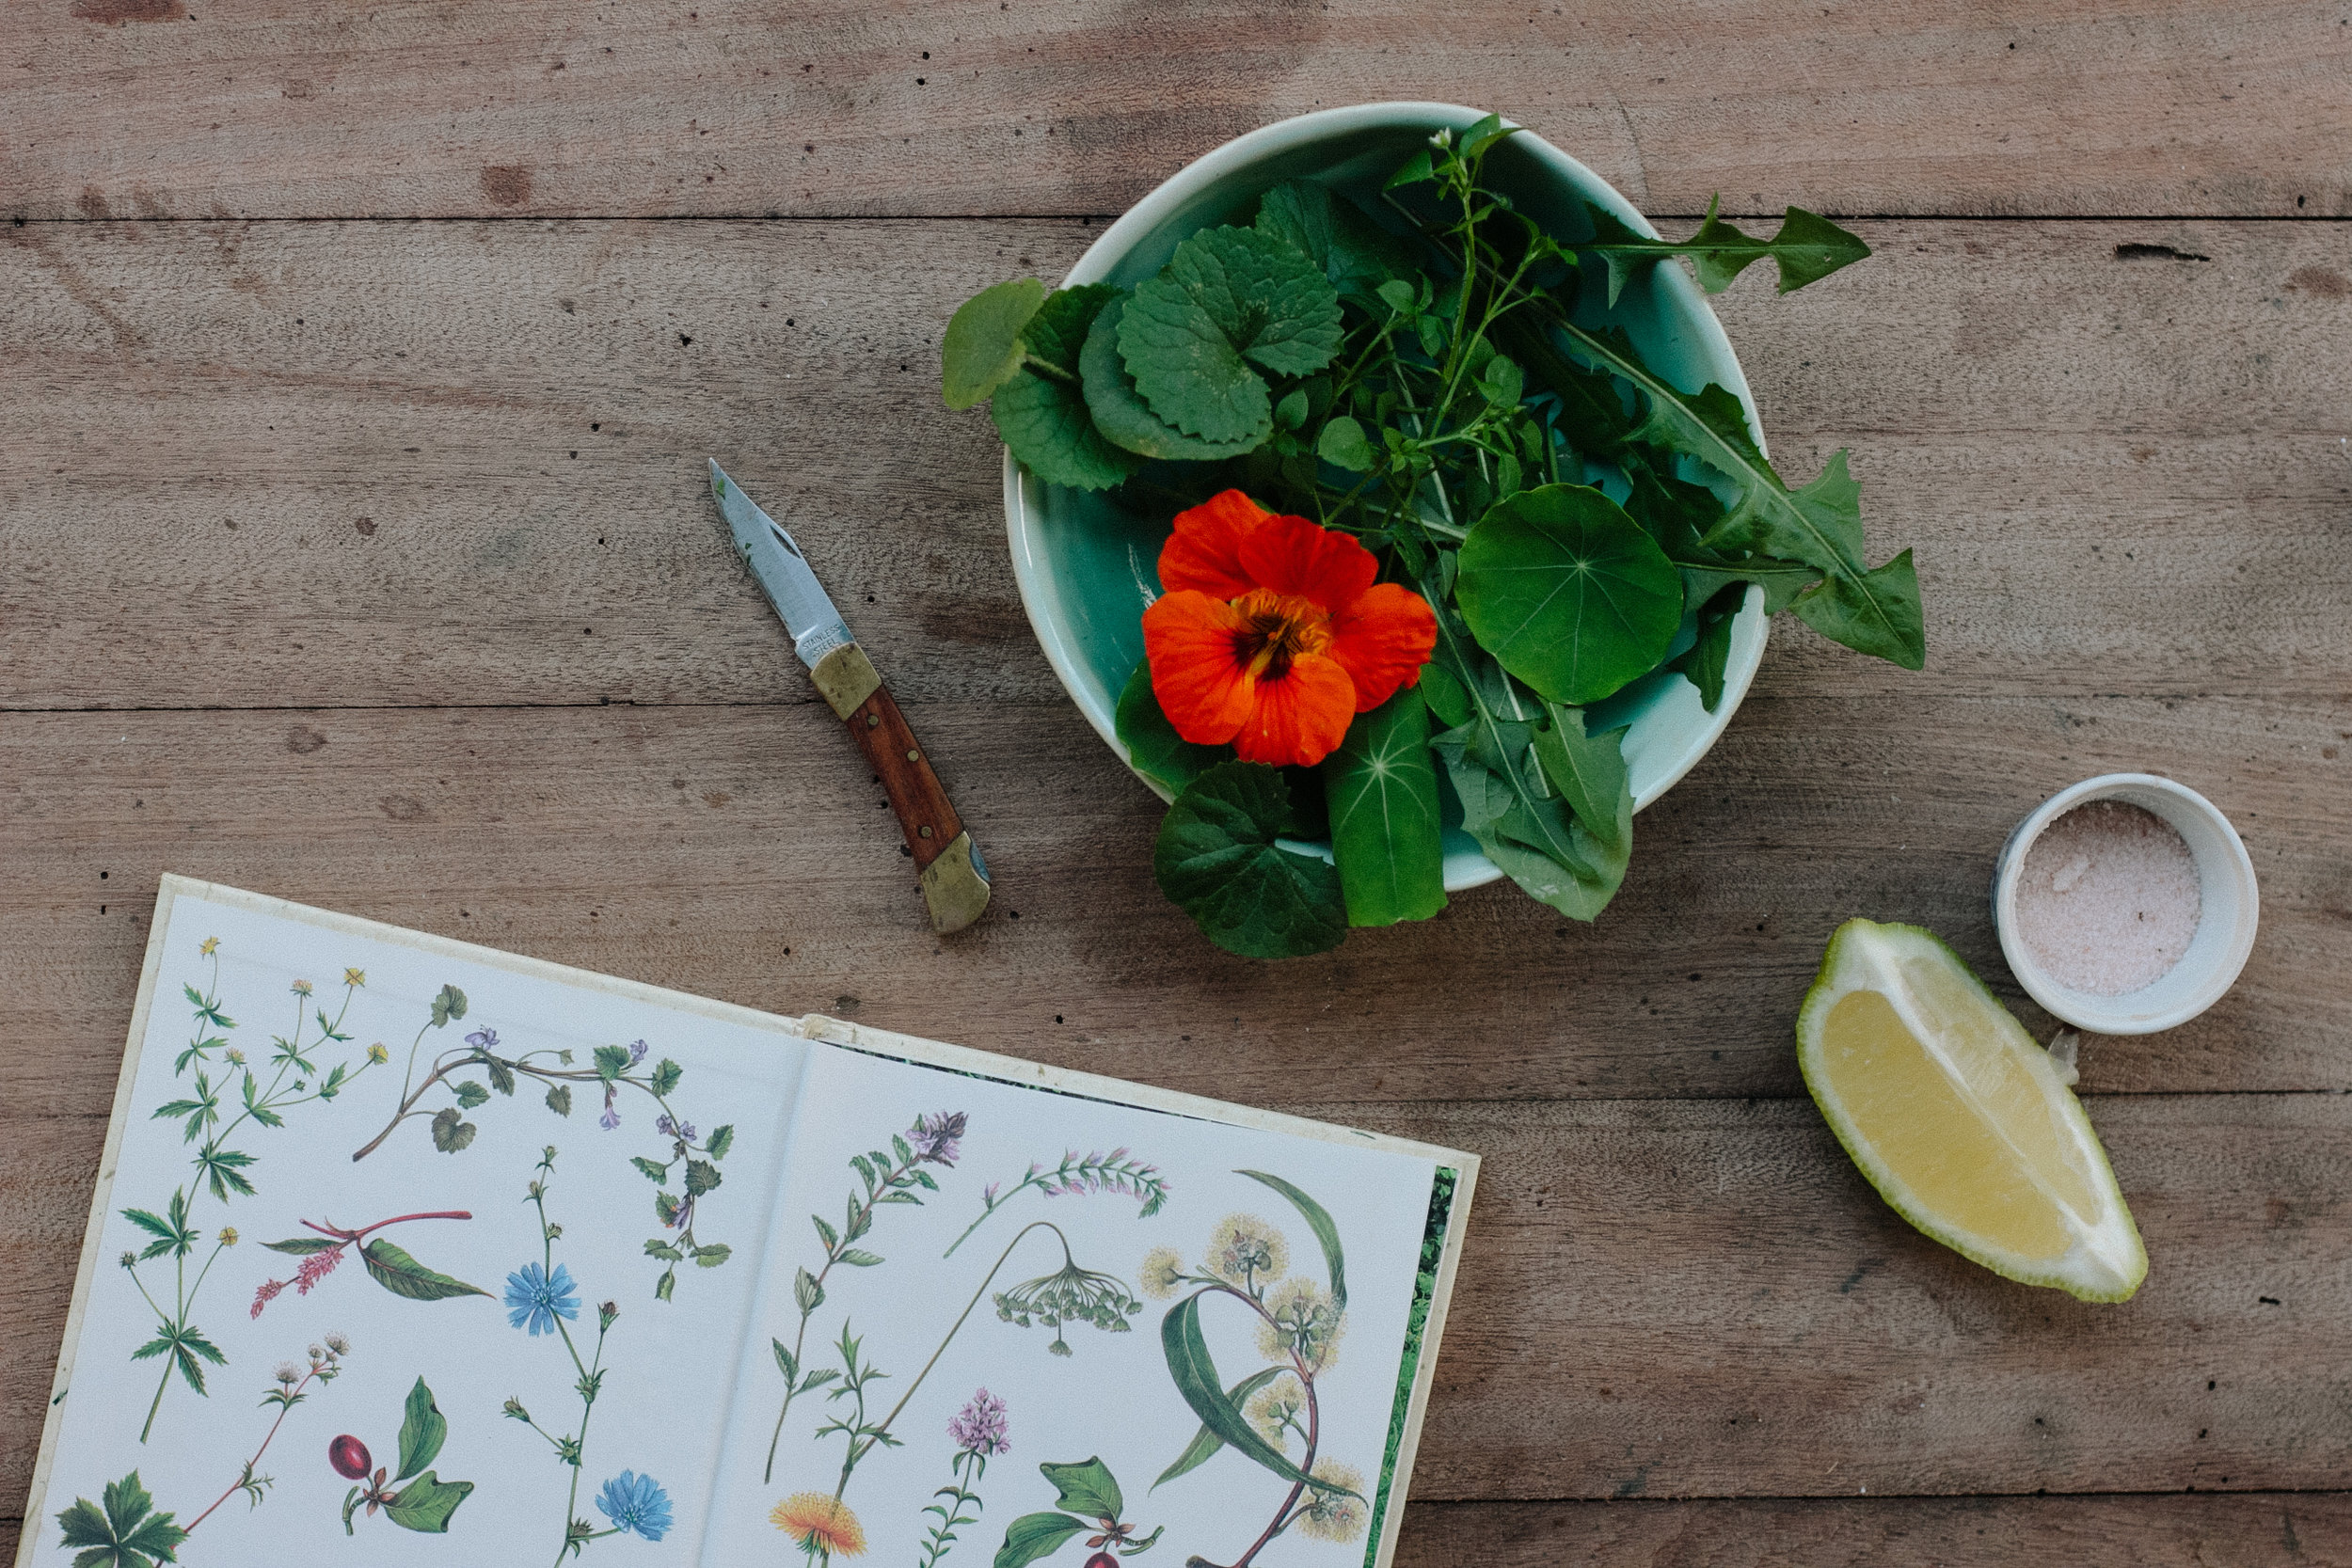 Foraged wild garden salad and herb book